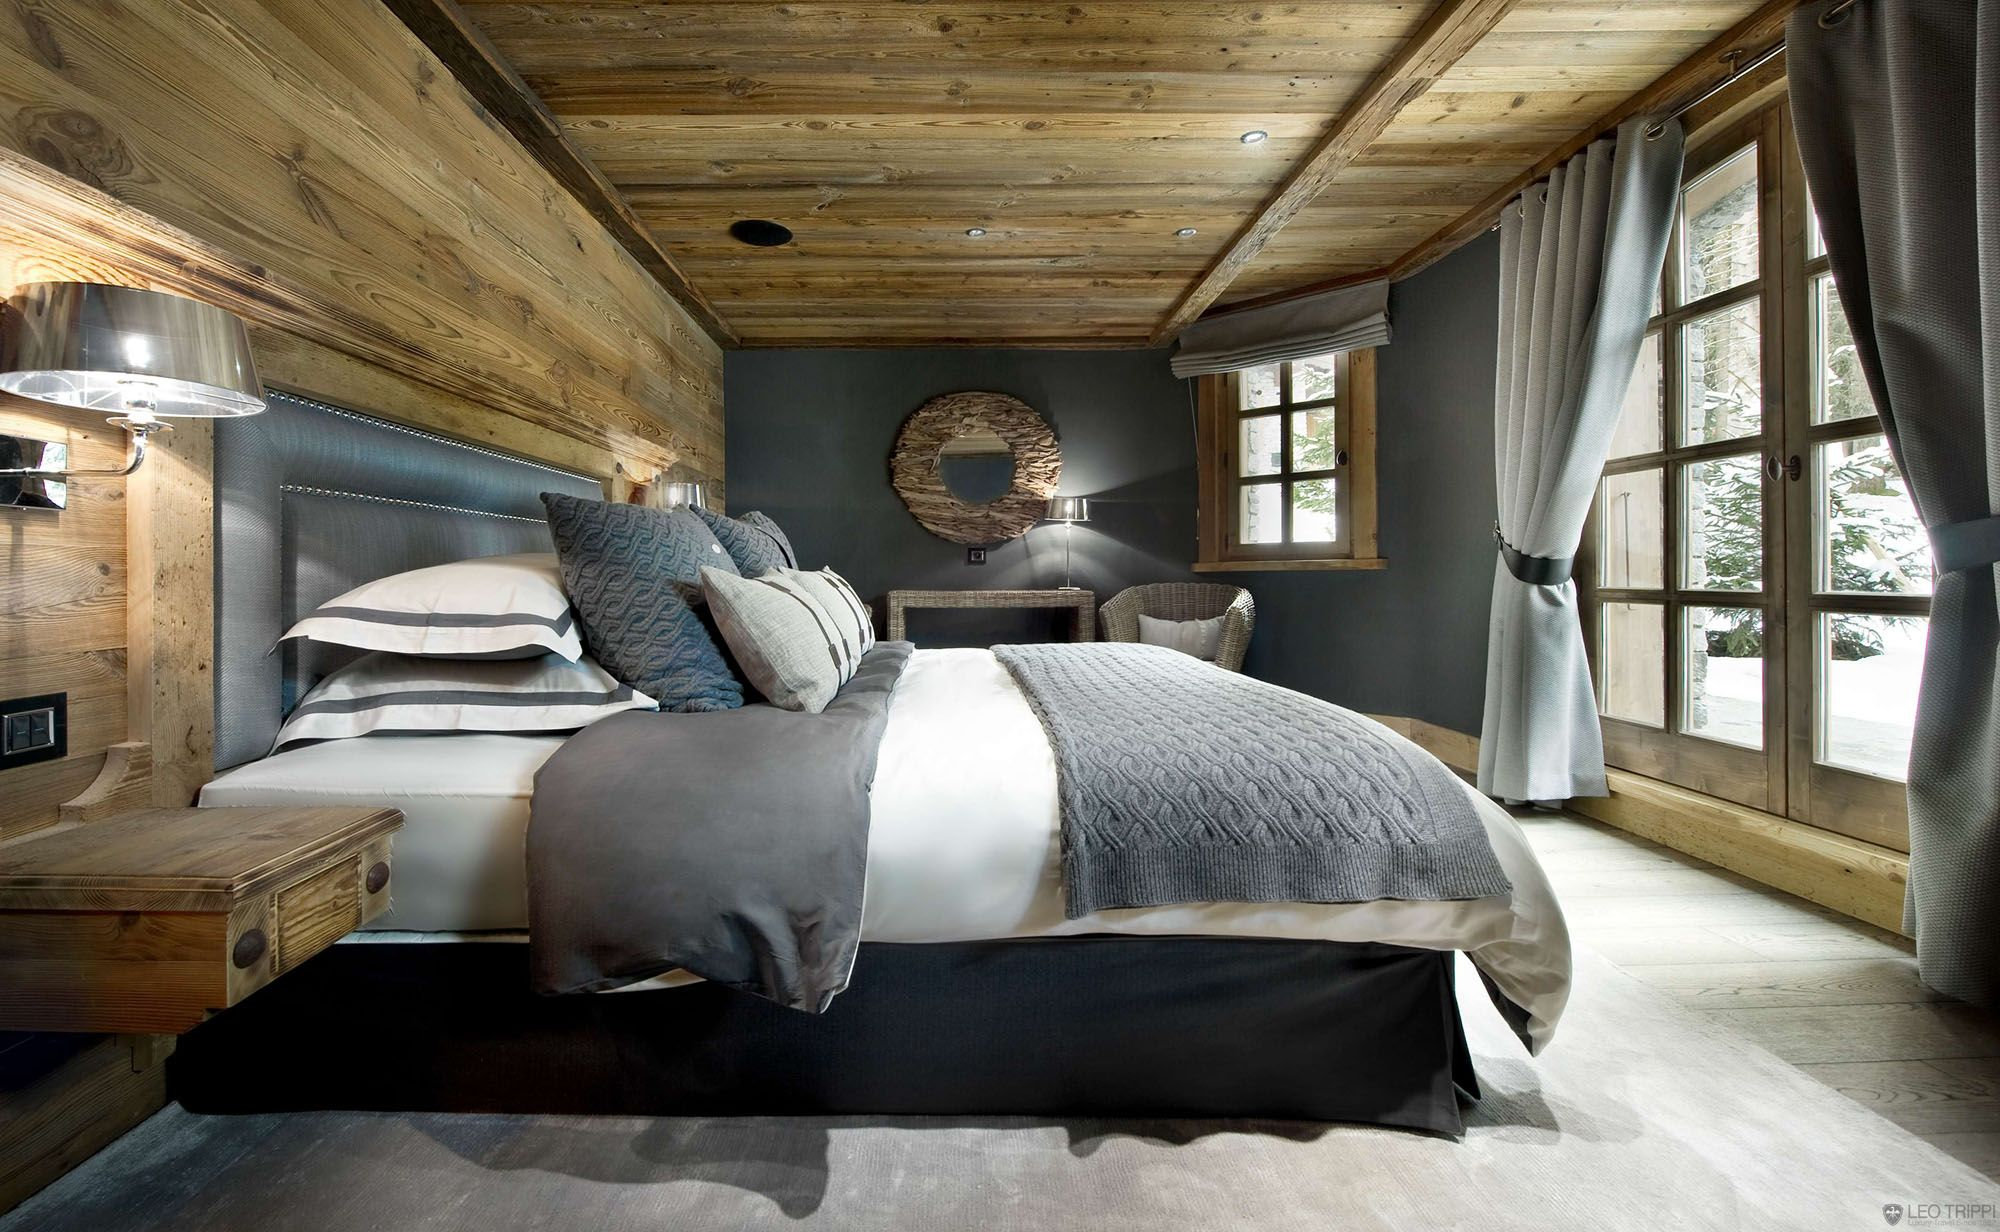 The Charming Petit Chateau 1850 in the French Alps | Rund ums haus ...